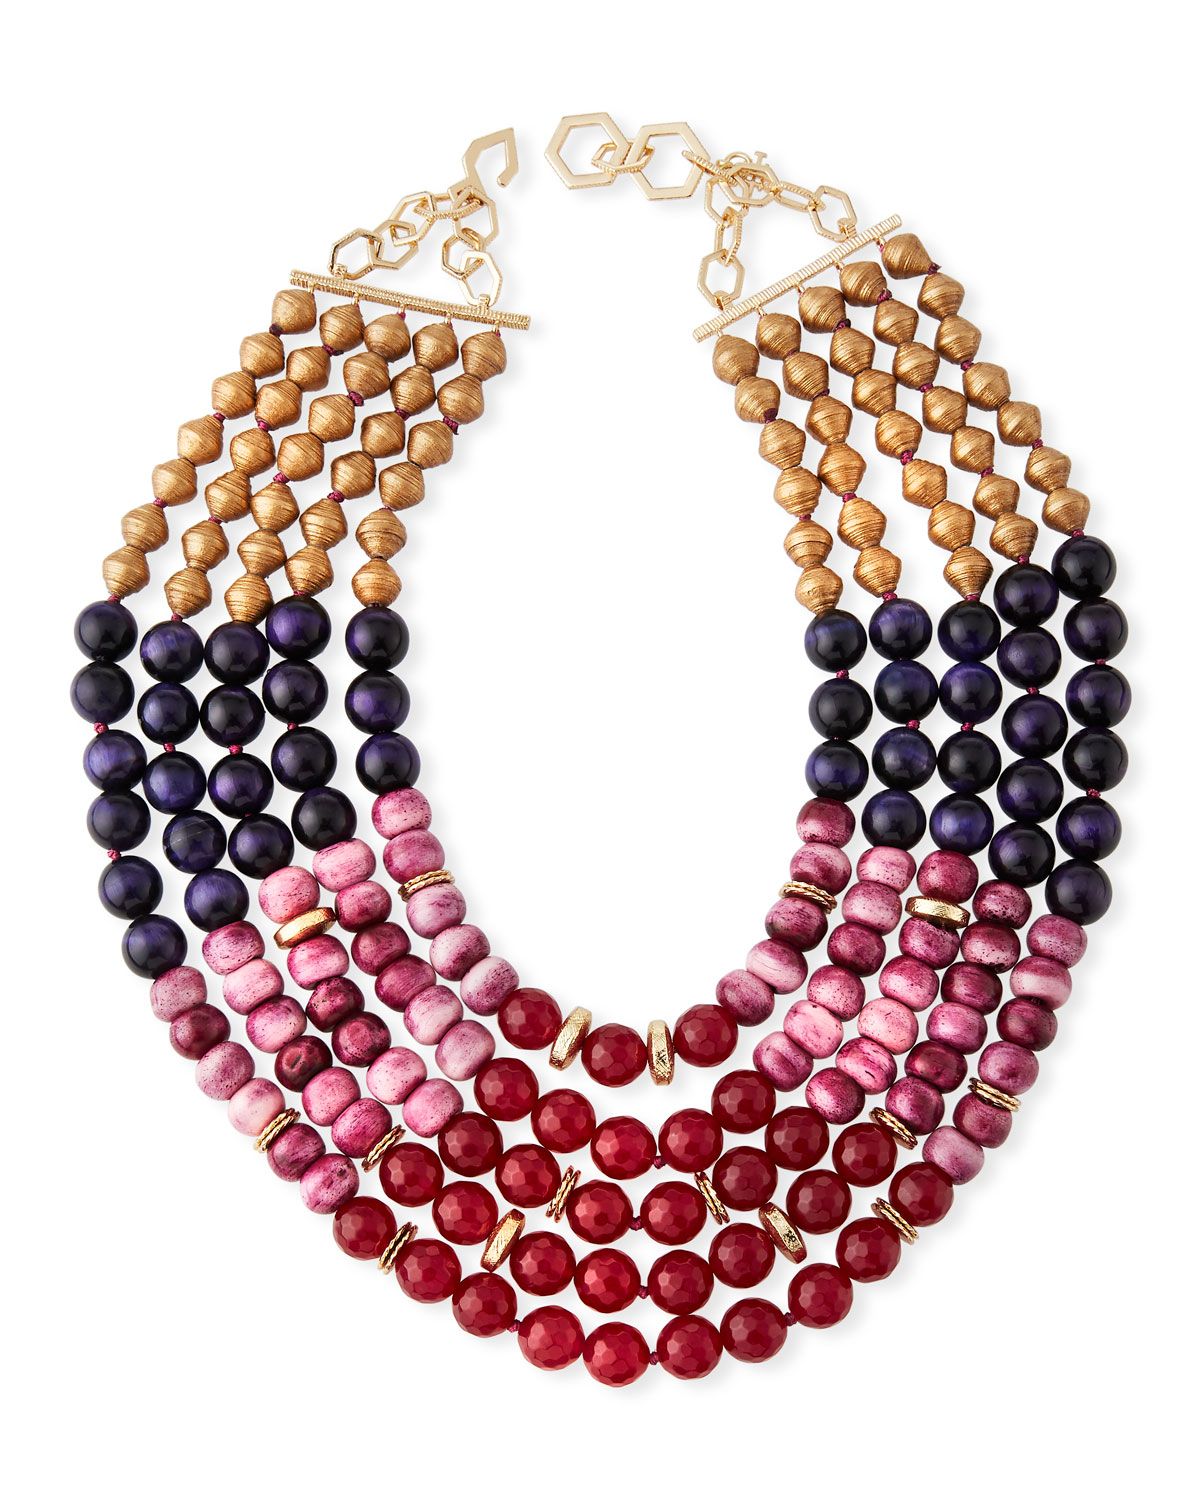 Multilayer Necklace w/ Mixed Beads